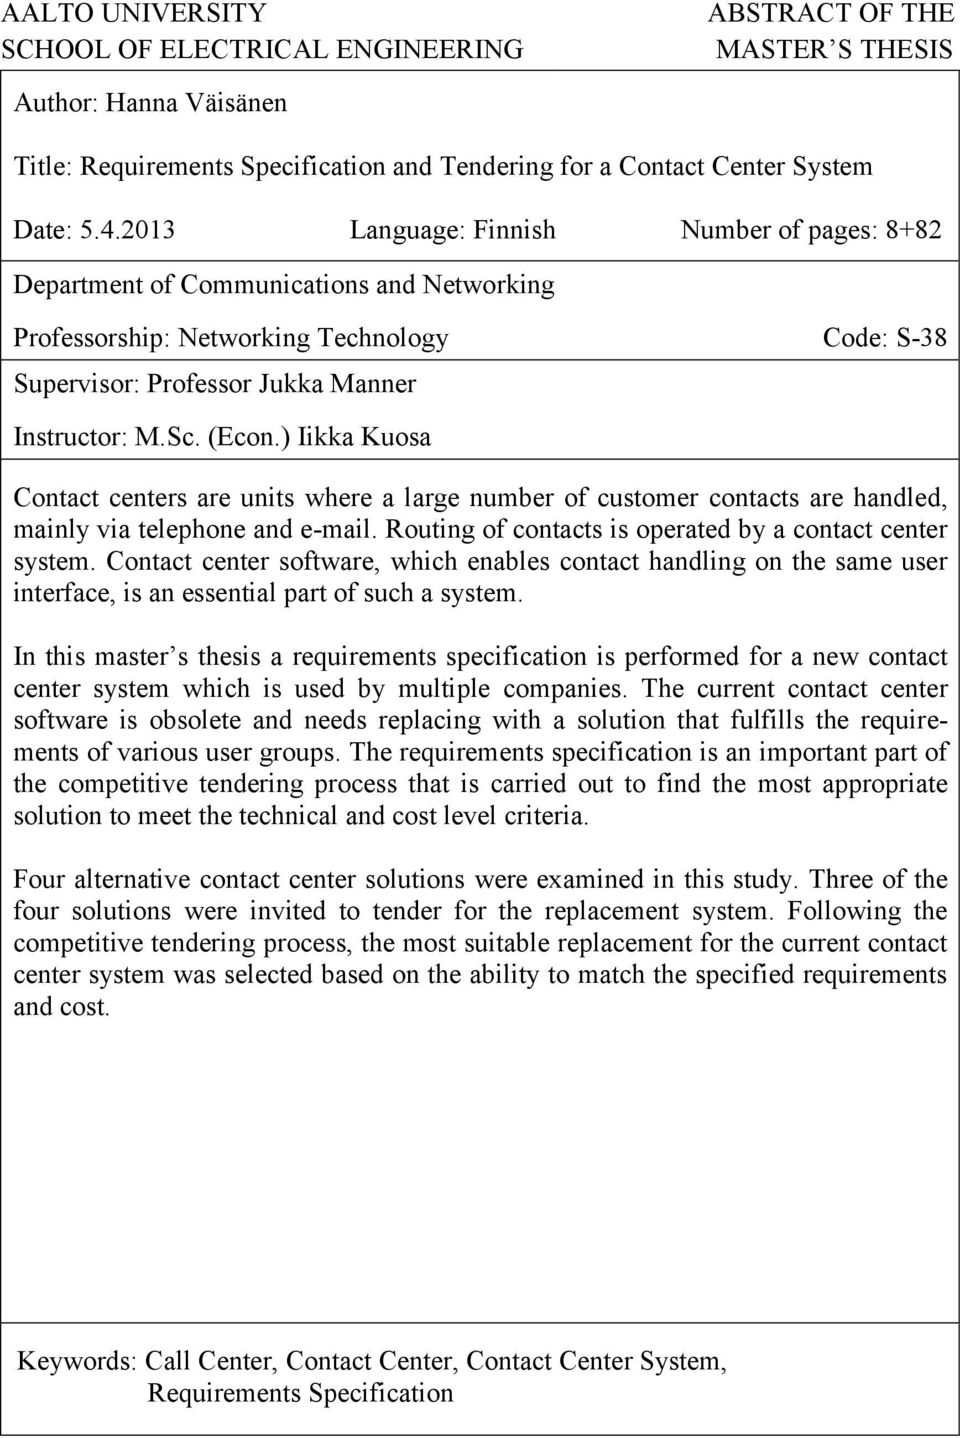 ) Iikka Kuosa Contact centers are units where a large number of customer contacts are handled, mainly via telephone and e-mail. Routing of contacts is operated by a contact center system.